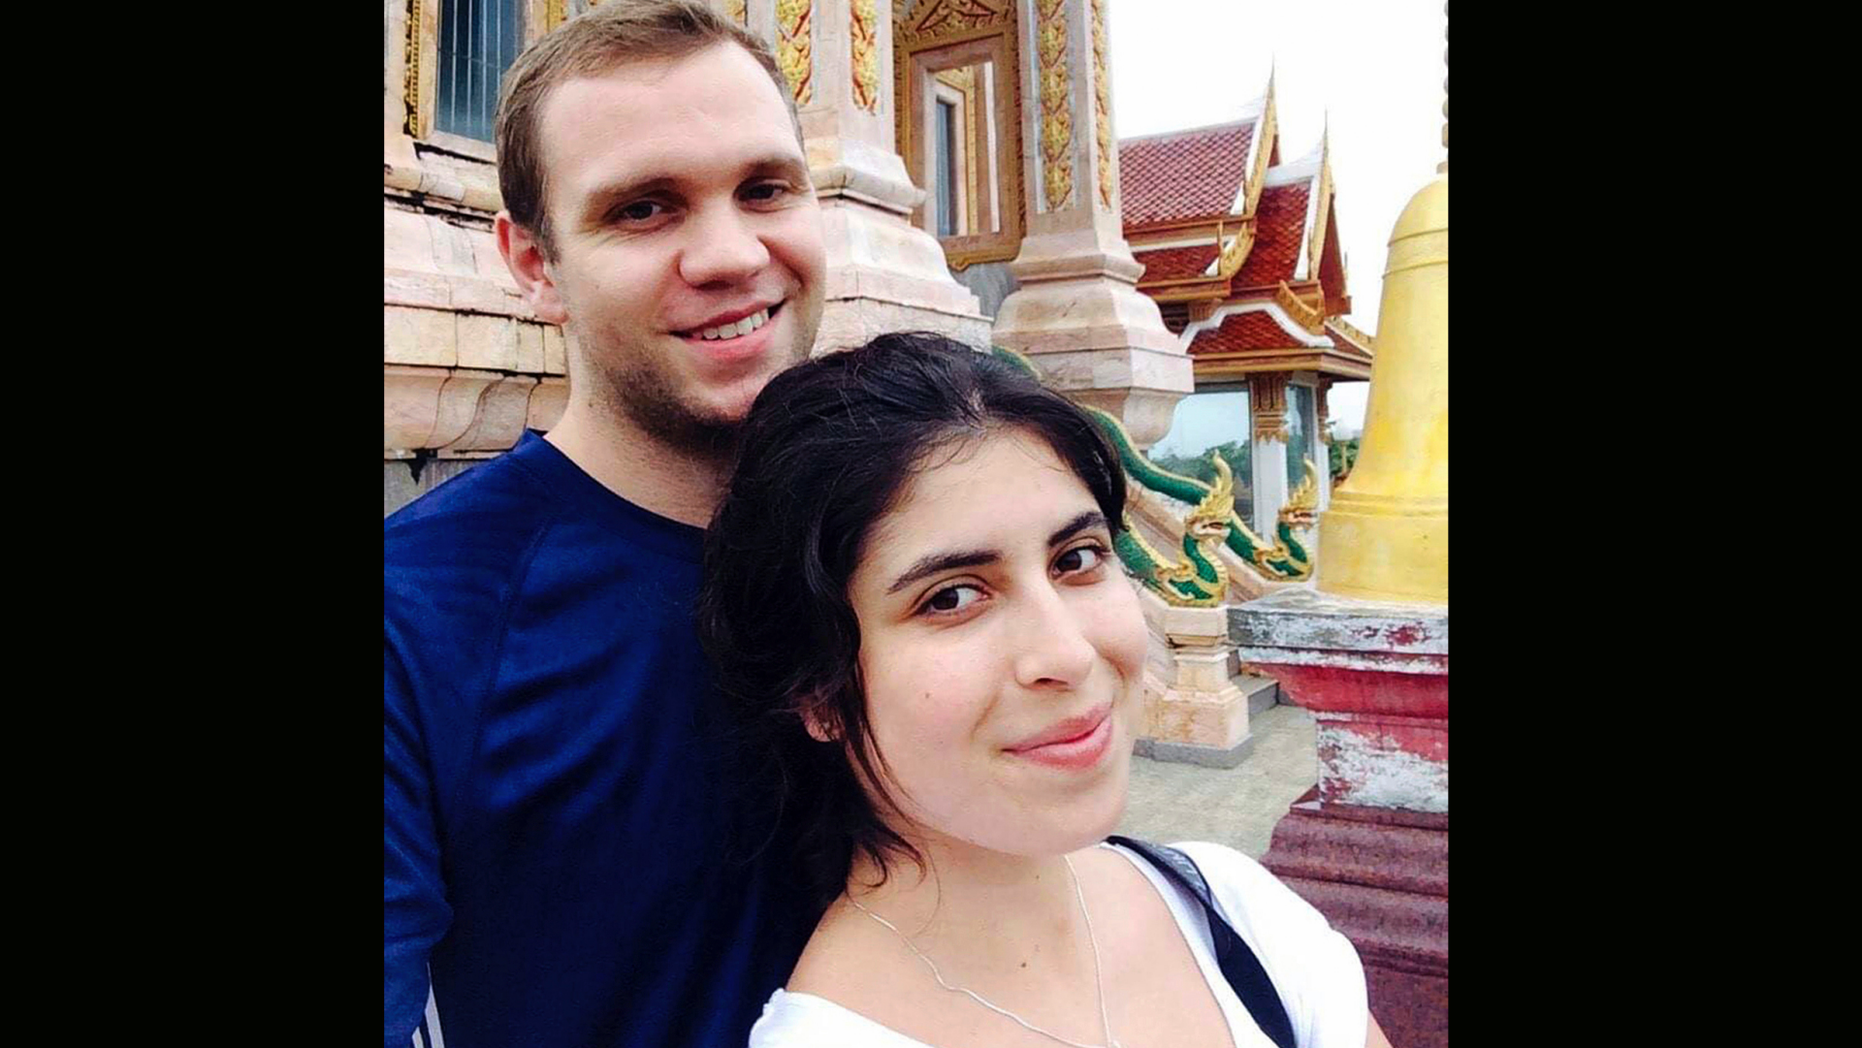 FILE - In this undated family photo, showing Matthew Hedges with his wife Daniela Tejada. The 31-year-old British academic Matthew Hedges was arrested May 5, 2018, at Dubai Airport and subsequently convicted and sentenced to life in prison for espionage. The United Arab Emirates Ambassador in London Sulaiman Hamid Almazroui said Friday Nov. 23, 2018, that his government is studying whether to grant clemency to Hedges. (Daniela Tejada via AP, FILE)